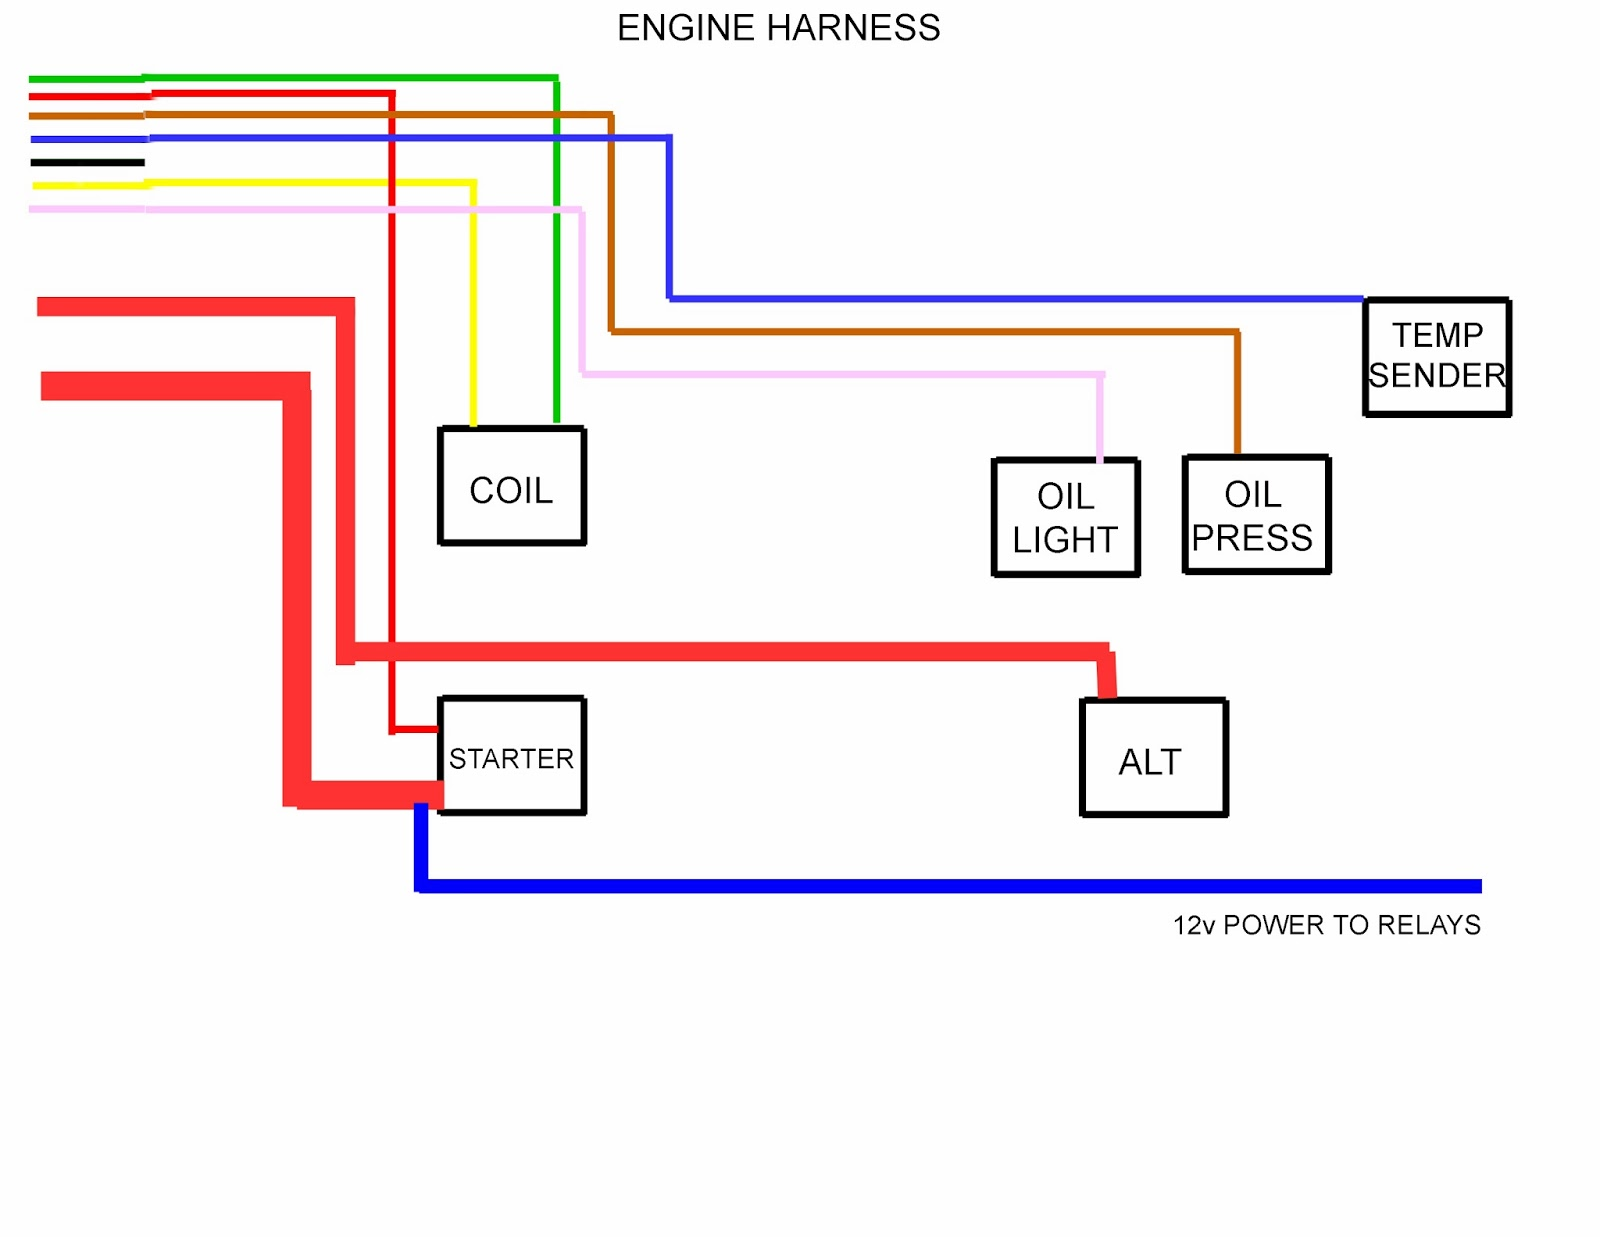 Porsche 924 Build Engine Diagrams Battery And Safety Switch Harness